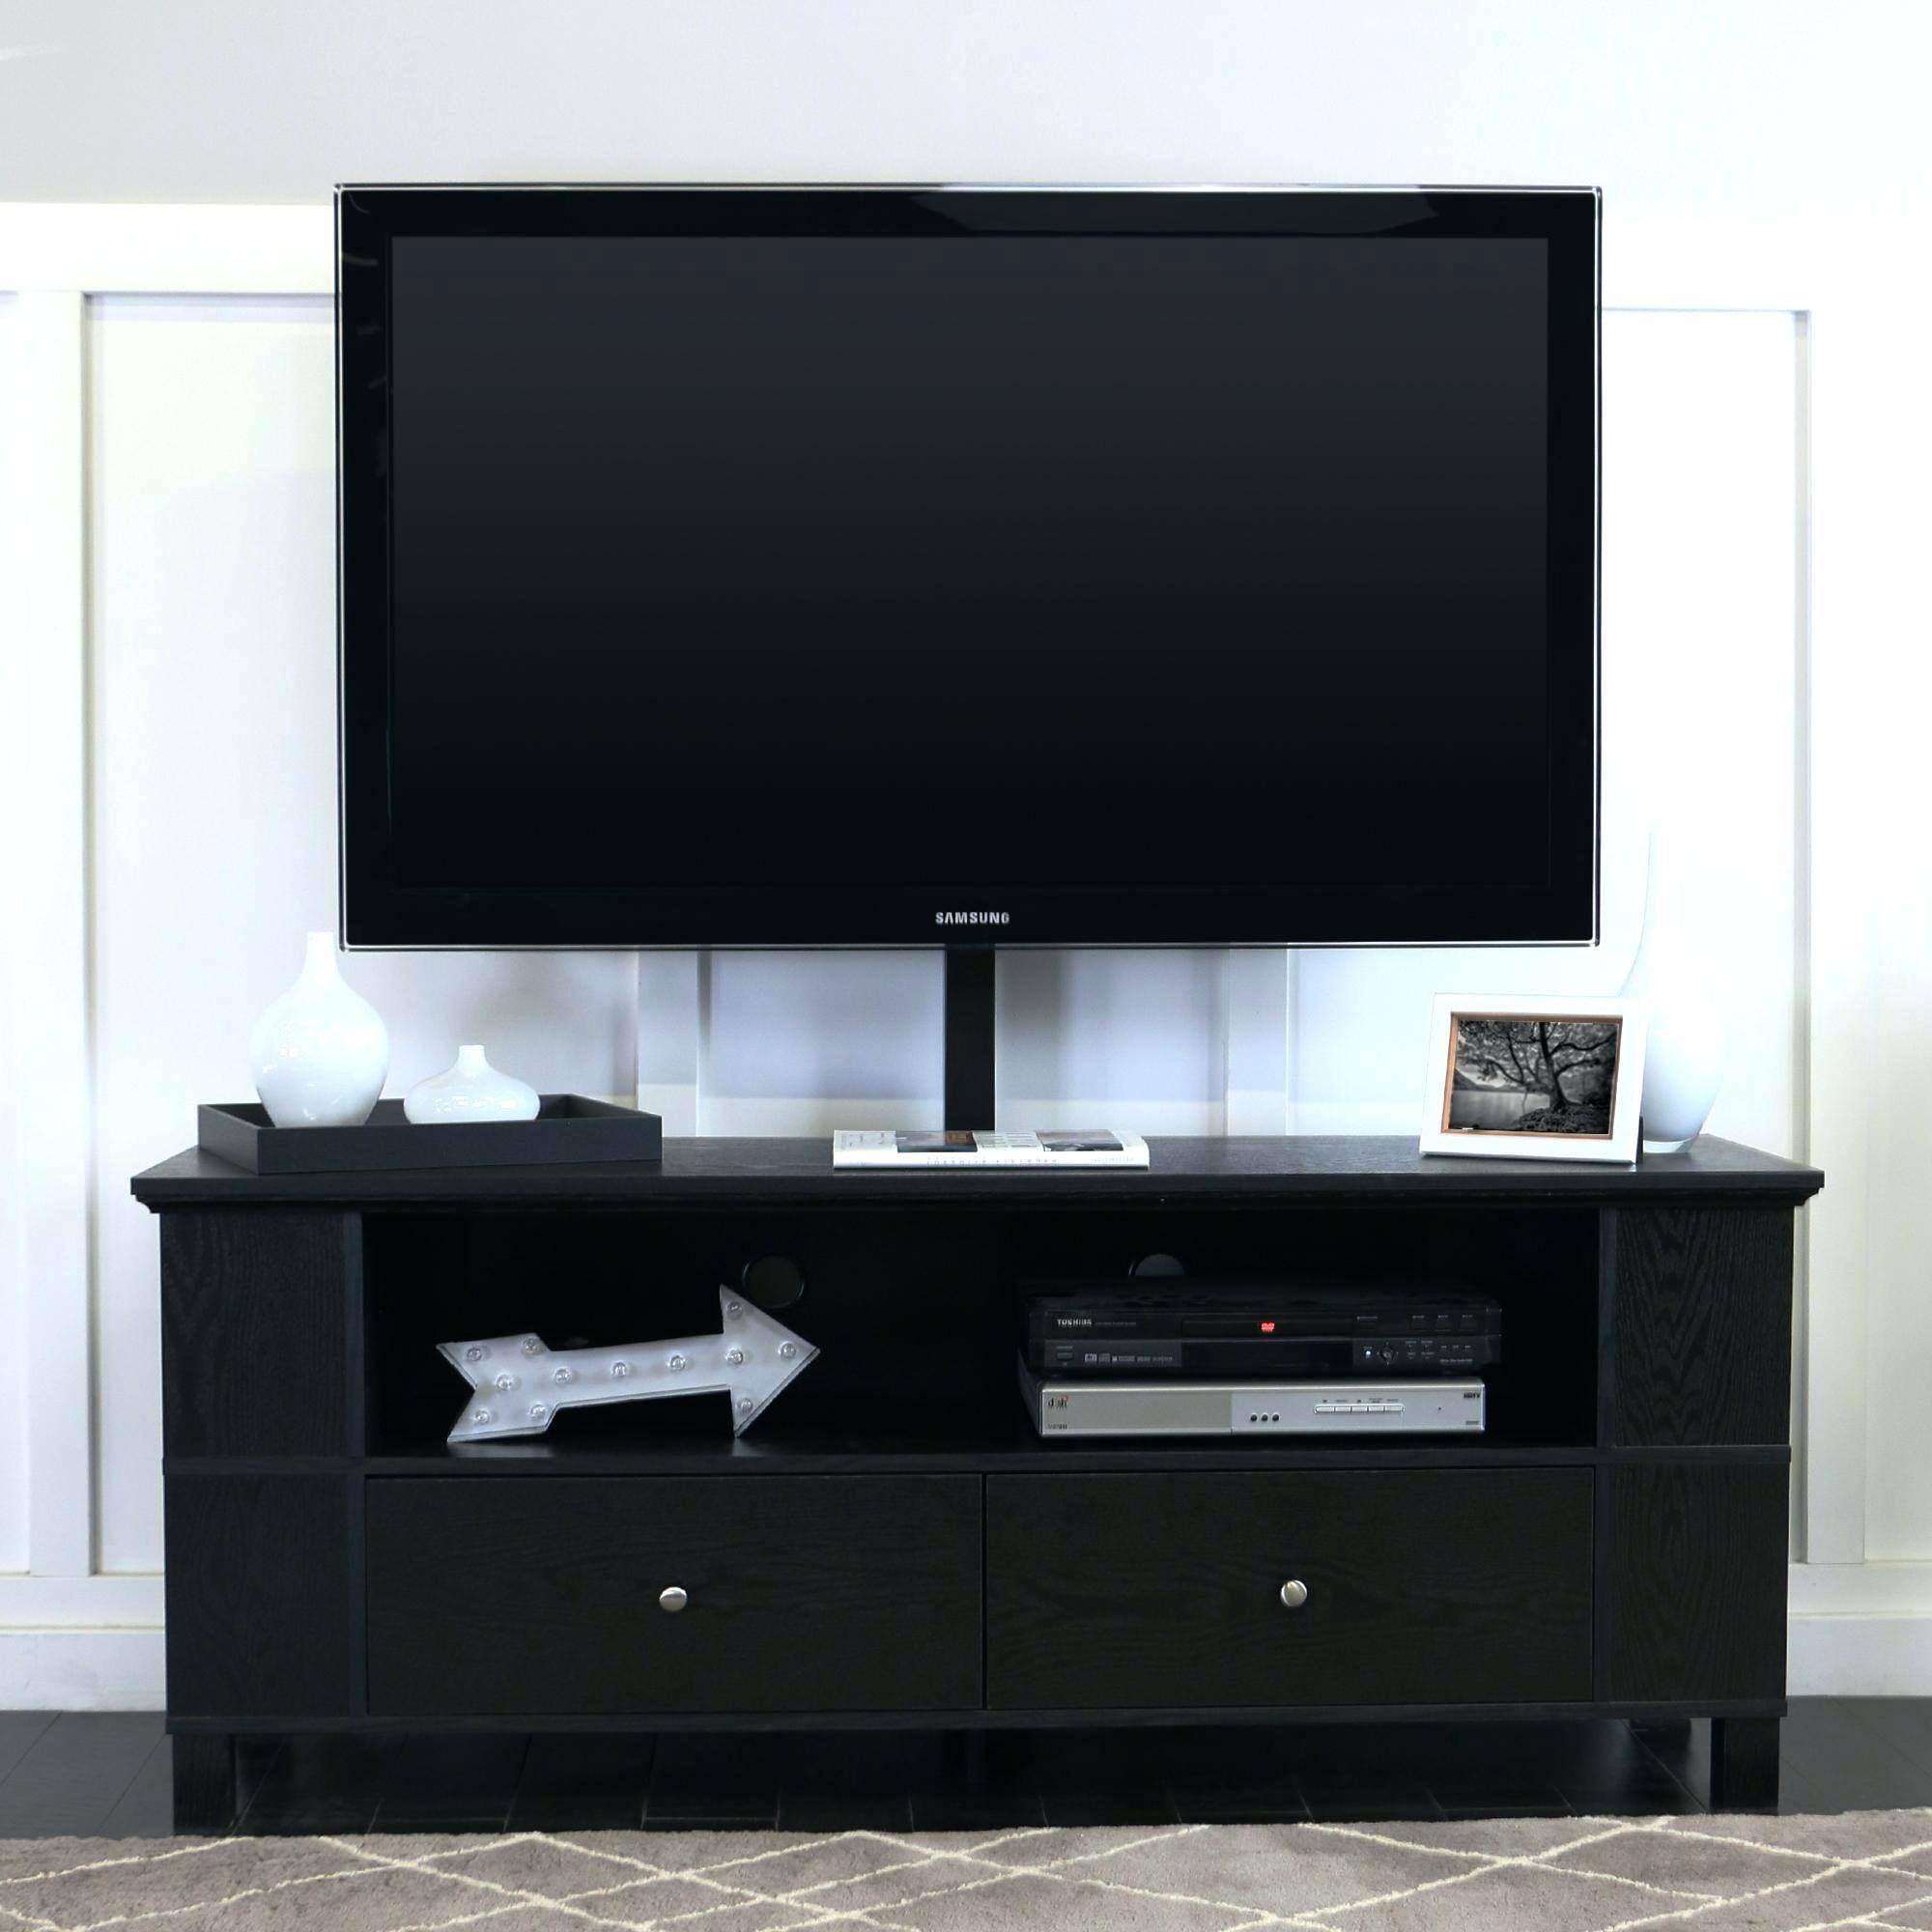 Tv Stand : Bello Black Corner Tv Stand For Tvs Up To 50 Cozy Black with Techlink Bench Corner Tv Stands (Image 9 of 15)